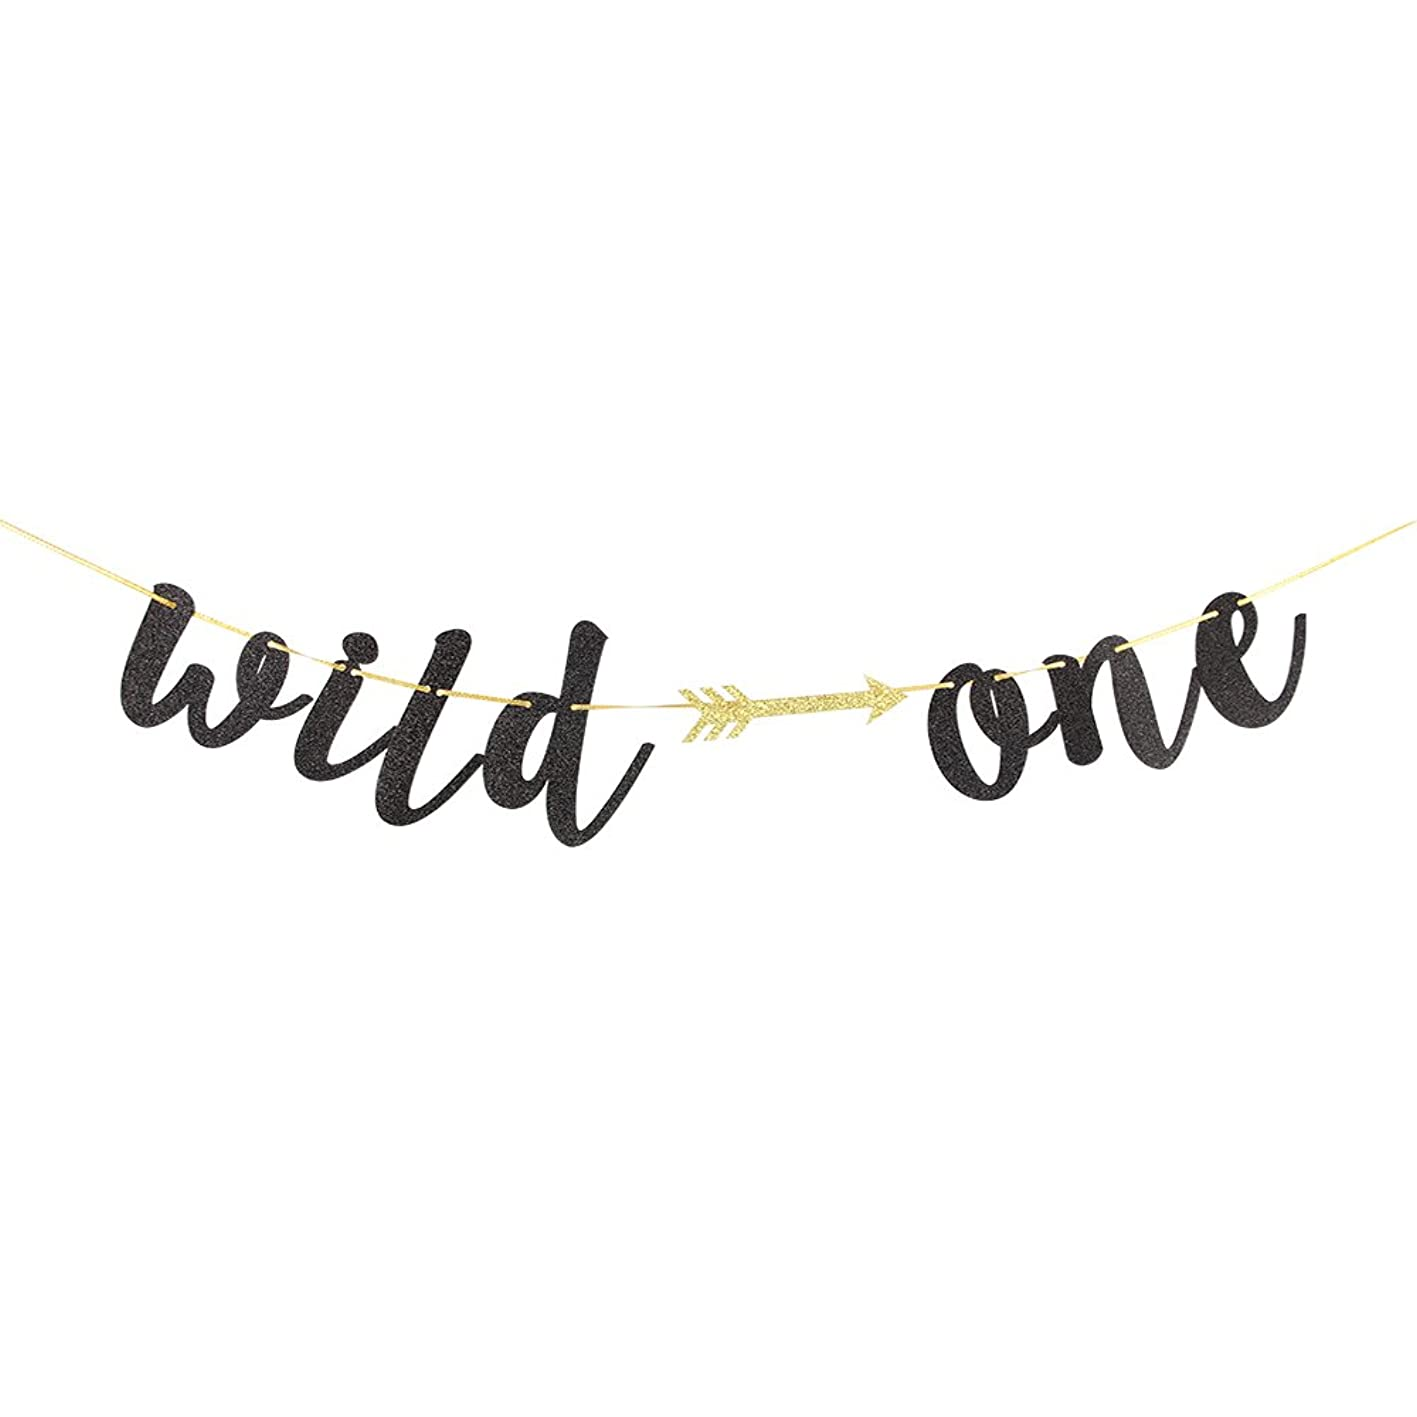 Karoo Jan Black Glitter Wild One Banner with Arrow Happy 1st Birthday Party Decoration Bunting Photo Props, Party Supplies qndnsrsufbb168